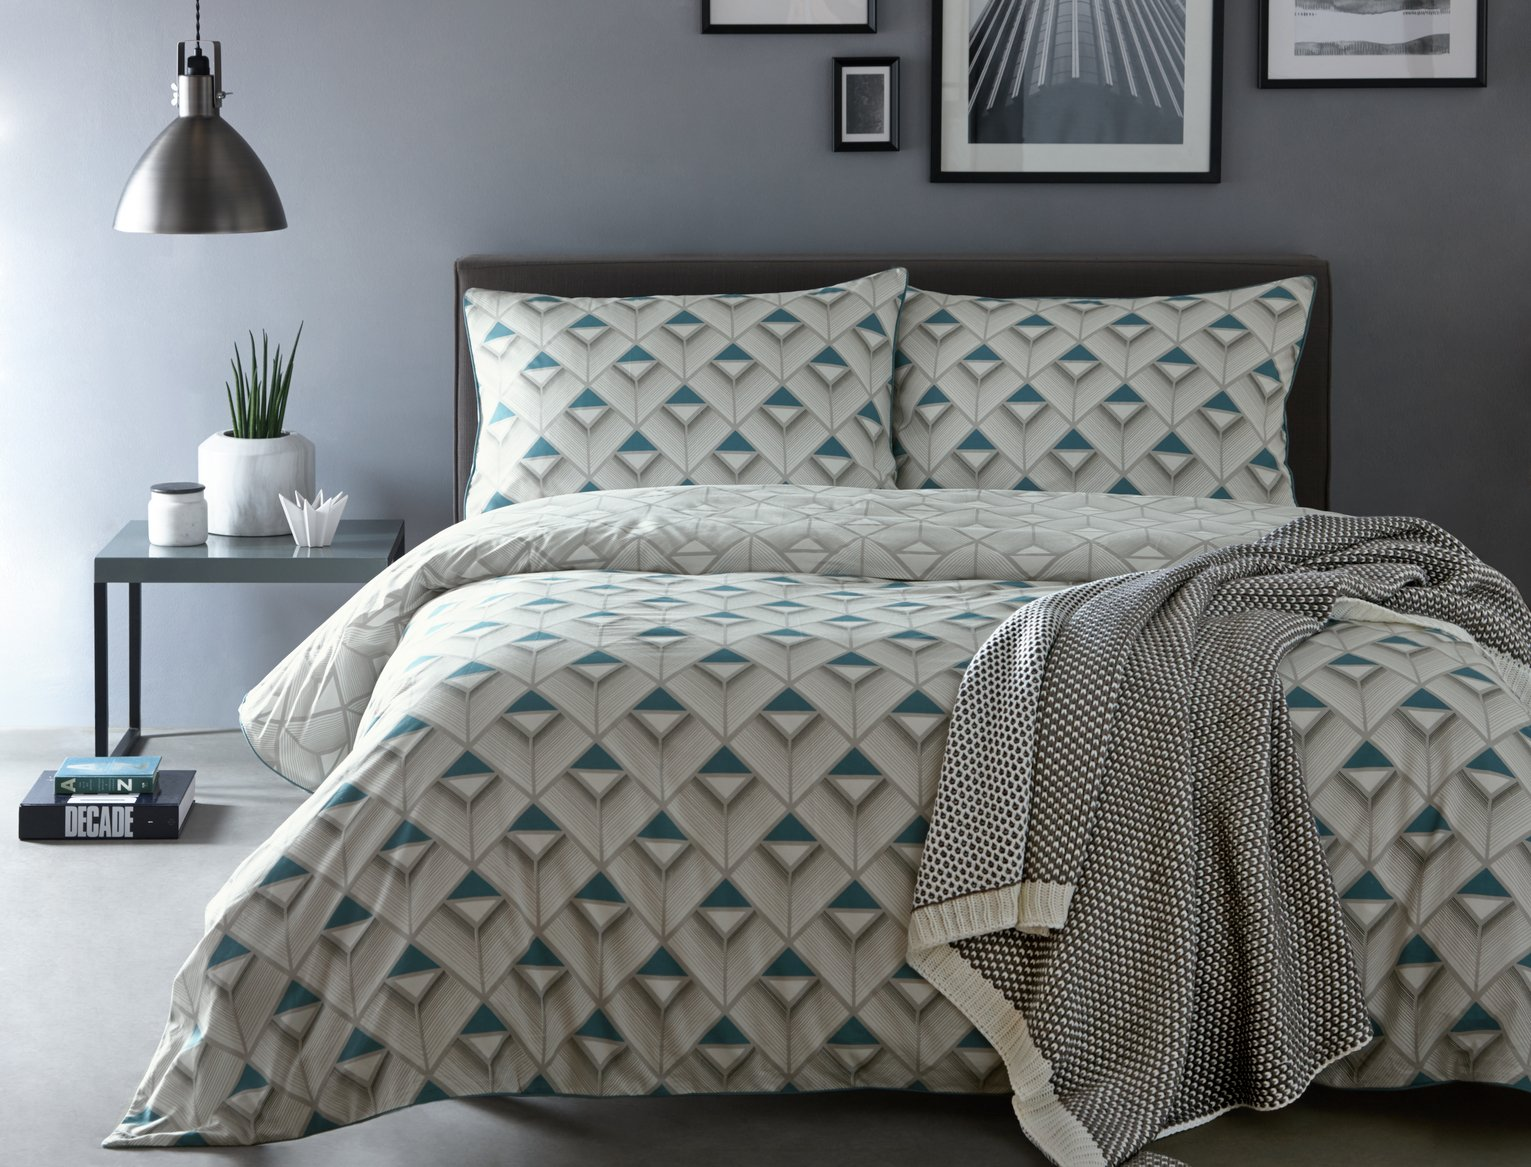 Image of Appletree Axis Blue Bedding Set - Kingsize